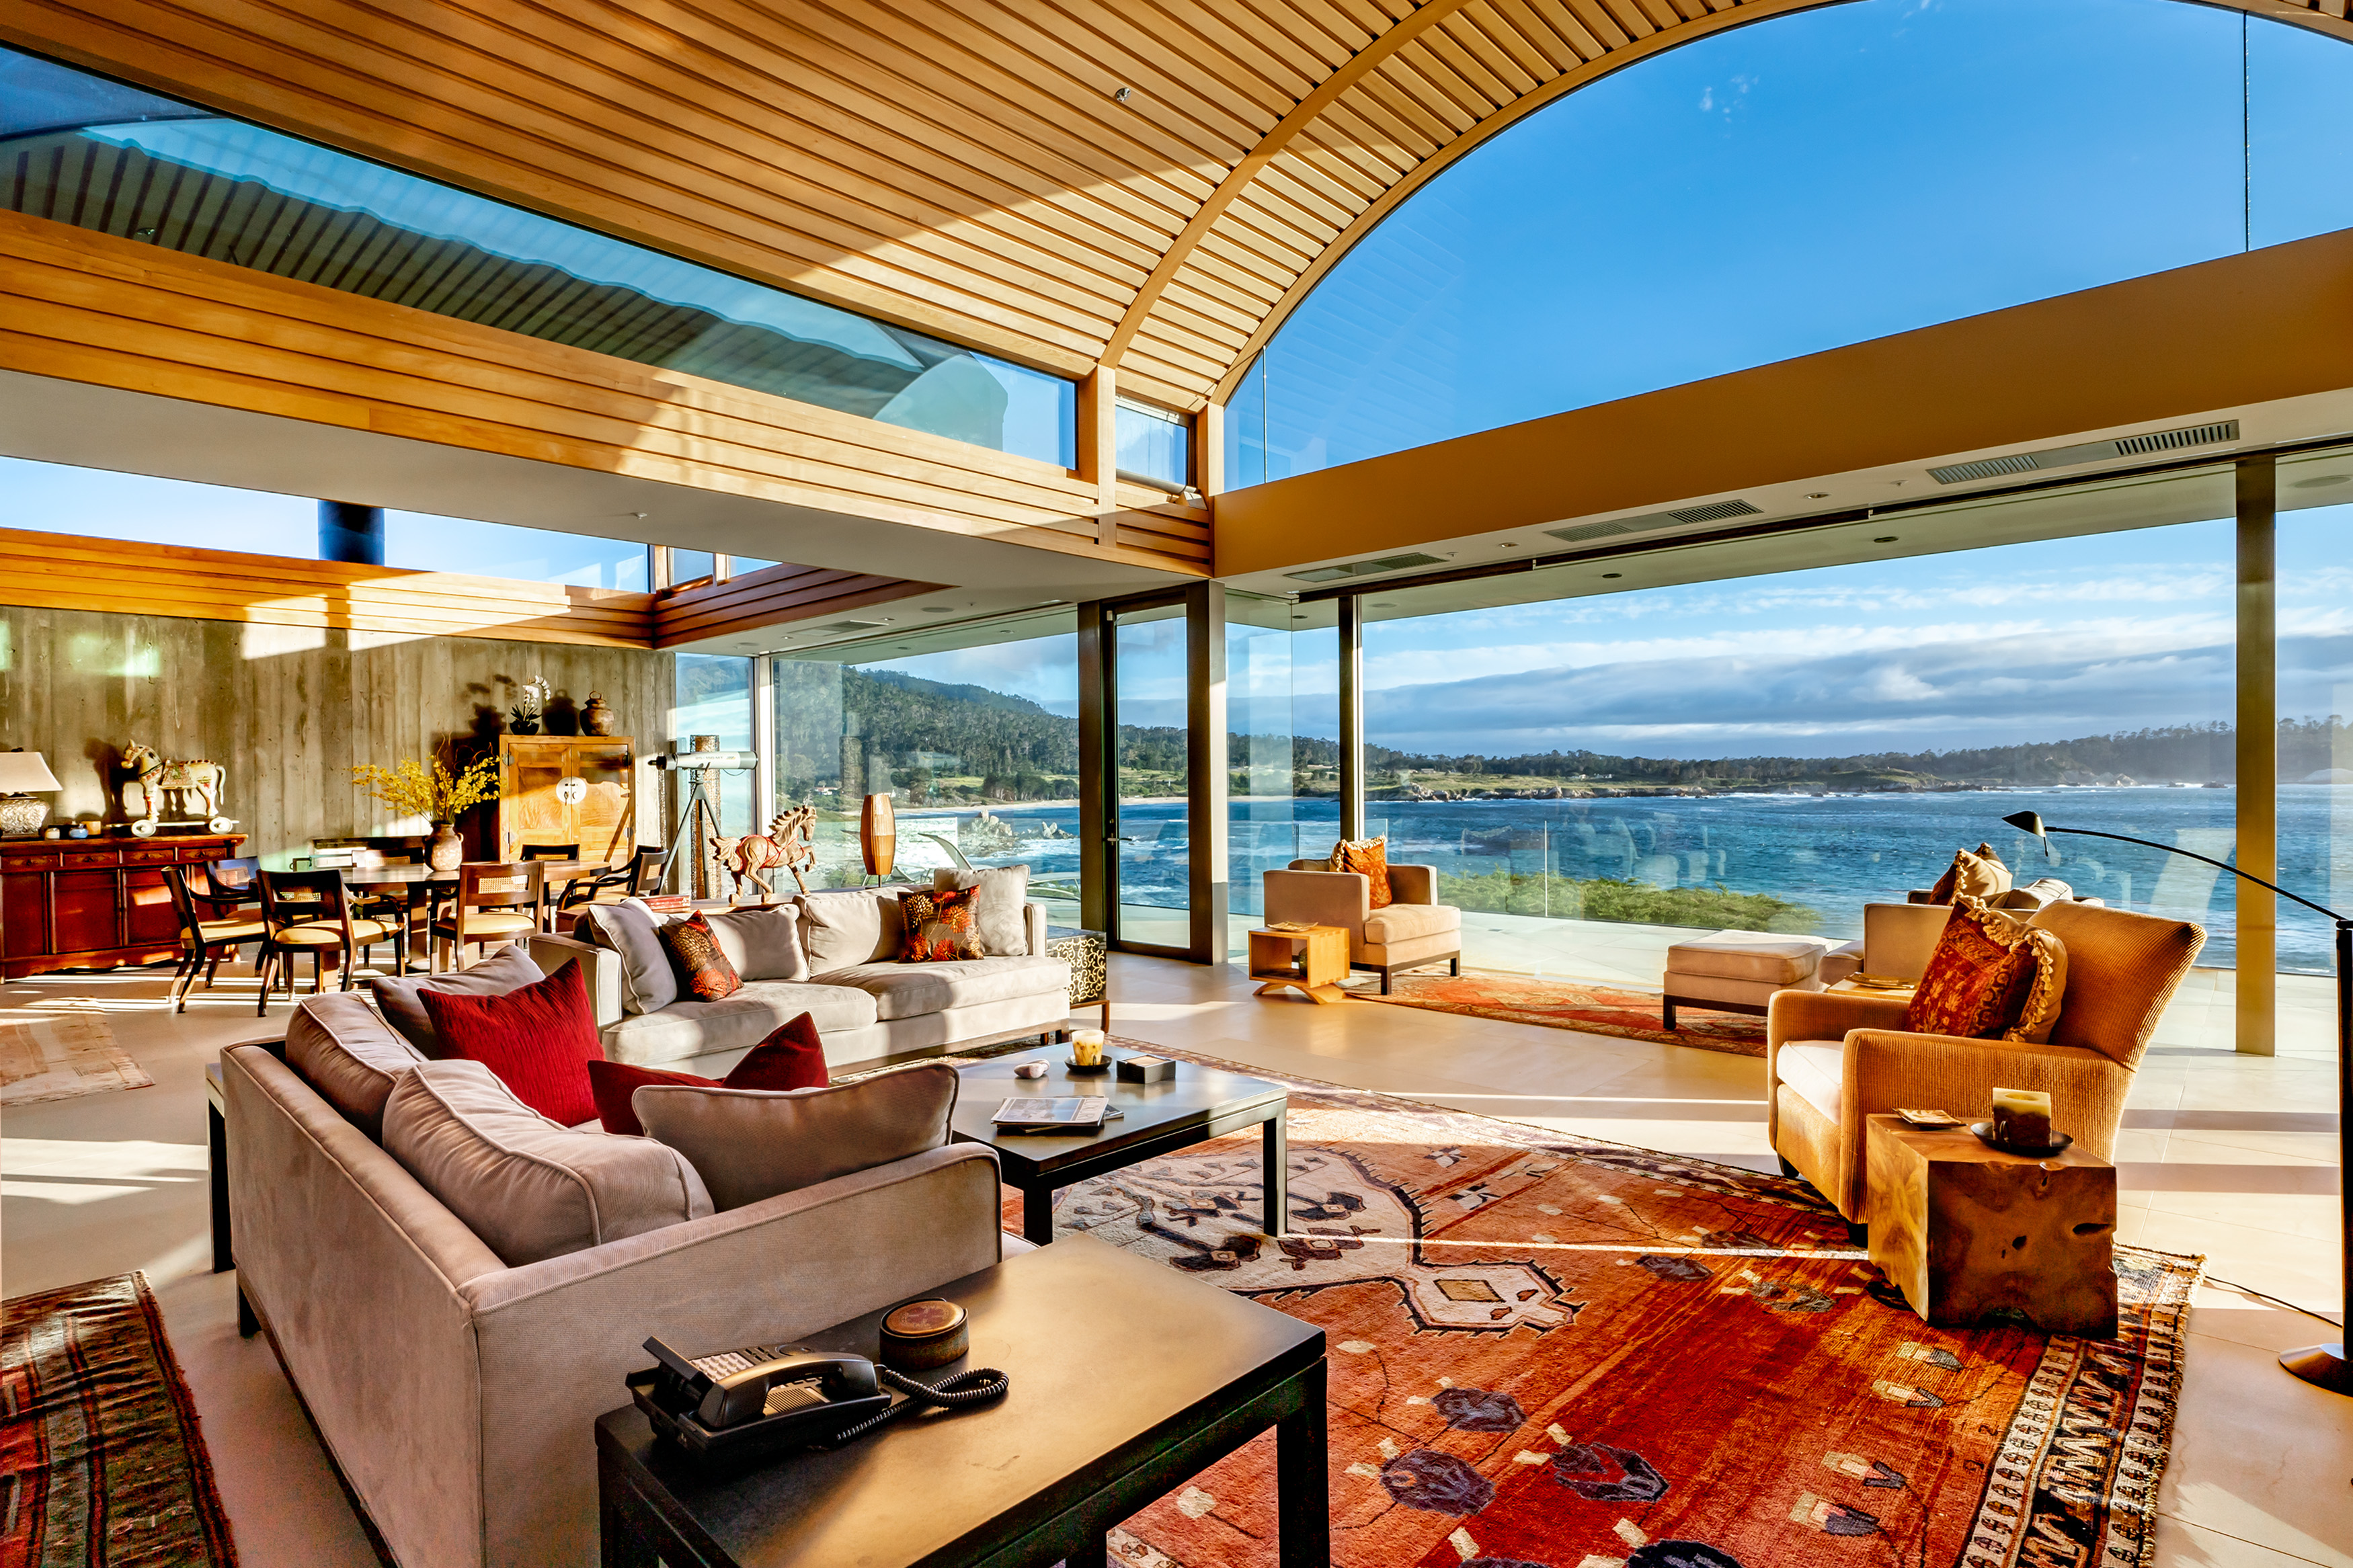 An interior view of a living room in a Carmel house for sale with a barrel vaulted wood ceiling and ocean views. There is a couch and other chairs.